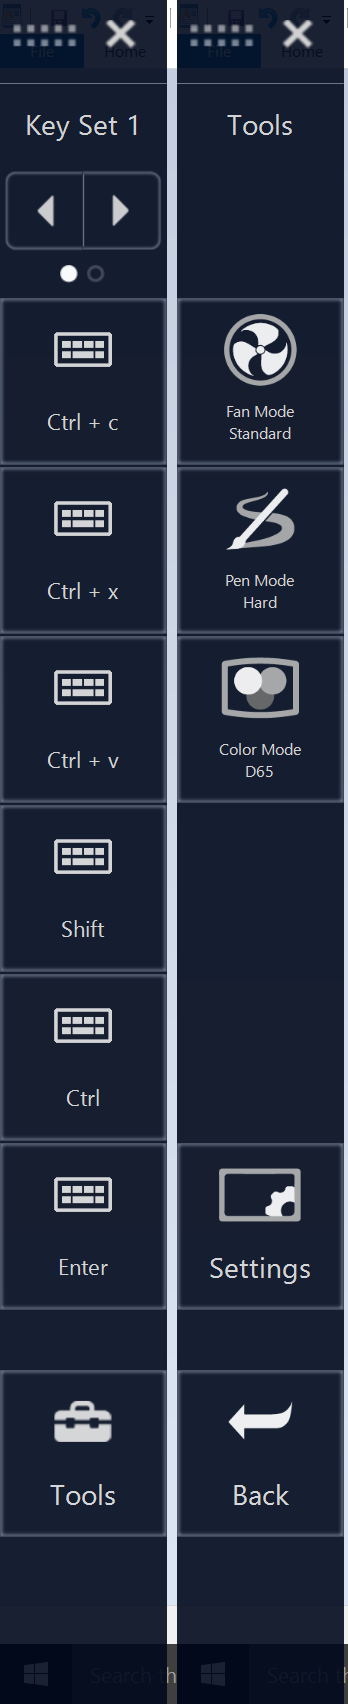 The hardware shortcut menus are accessed by tapping the L button along the top edge of the tablet